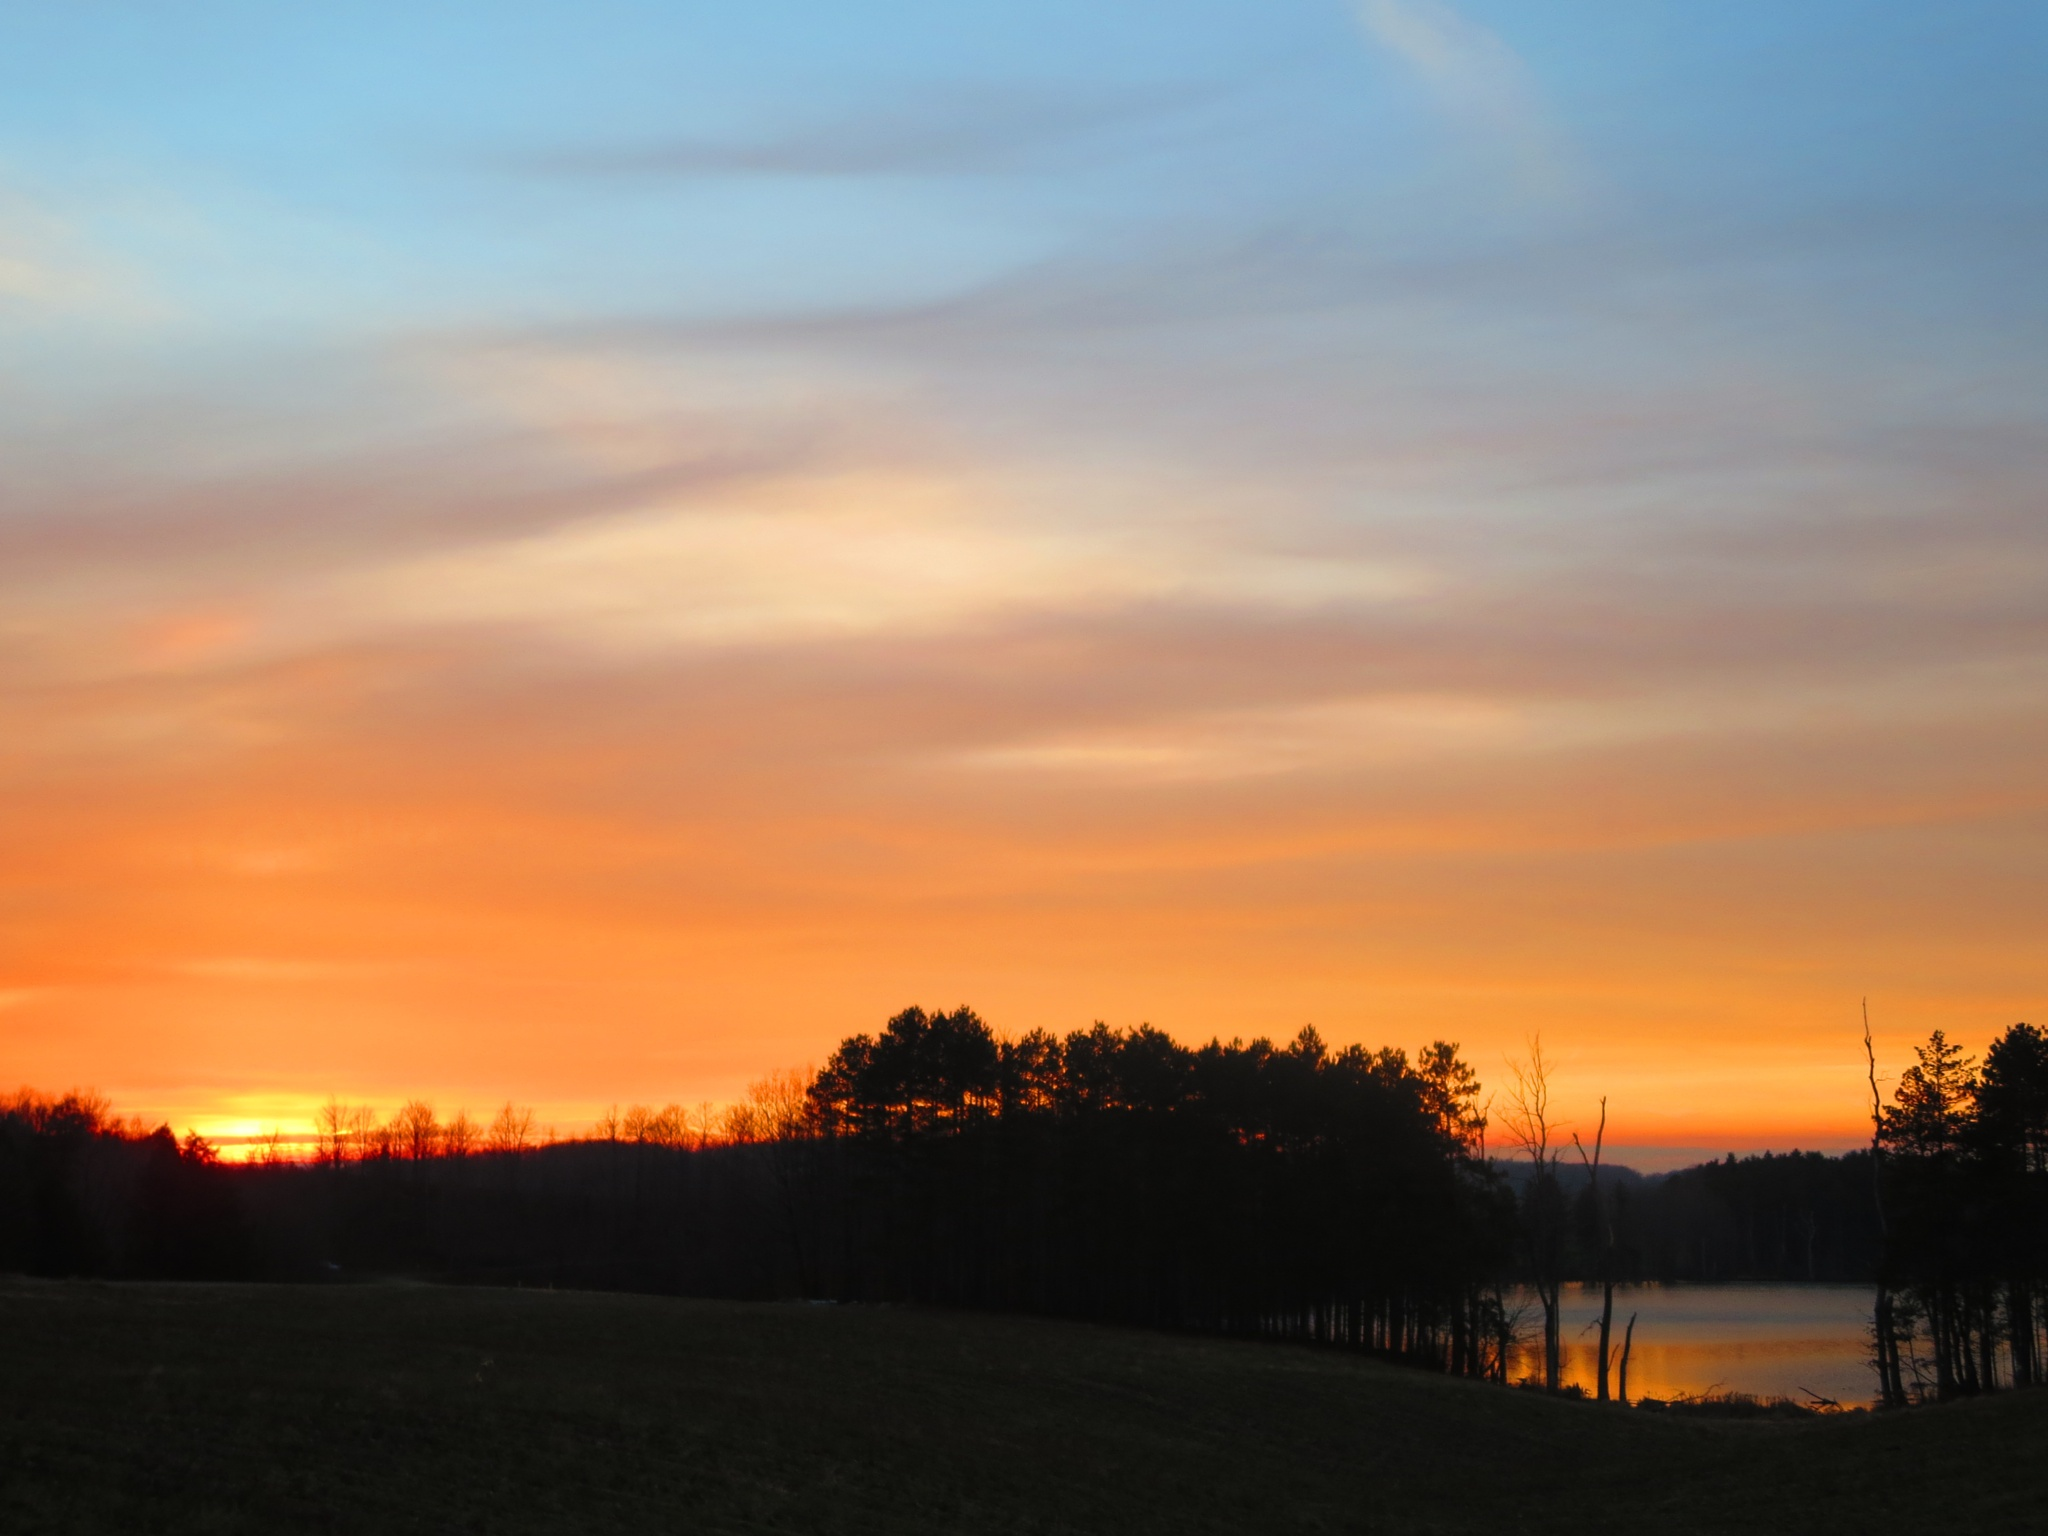 December sunset in the Finger Lakes, NY by sweiland